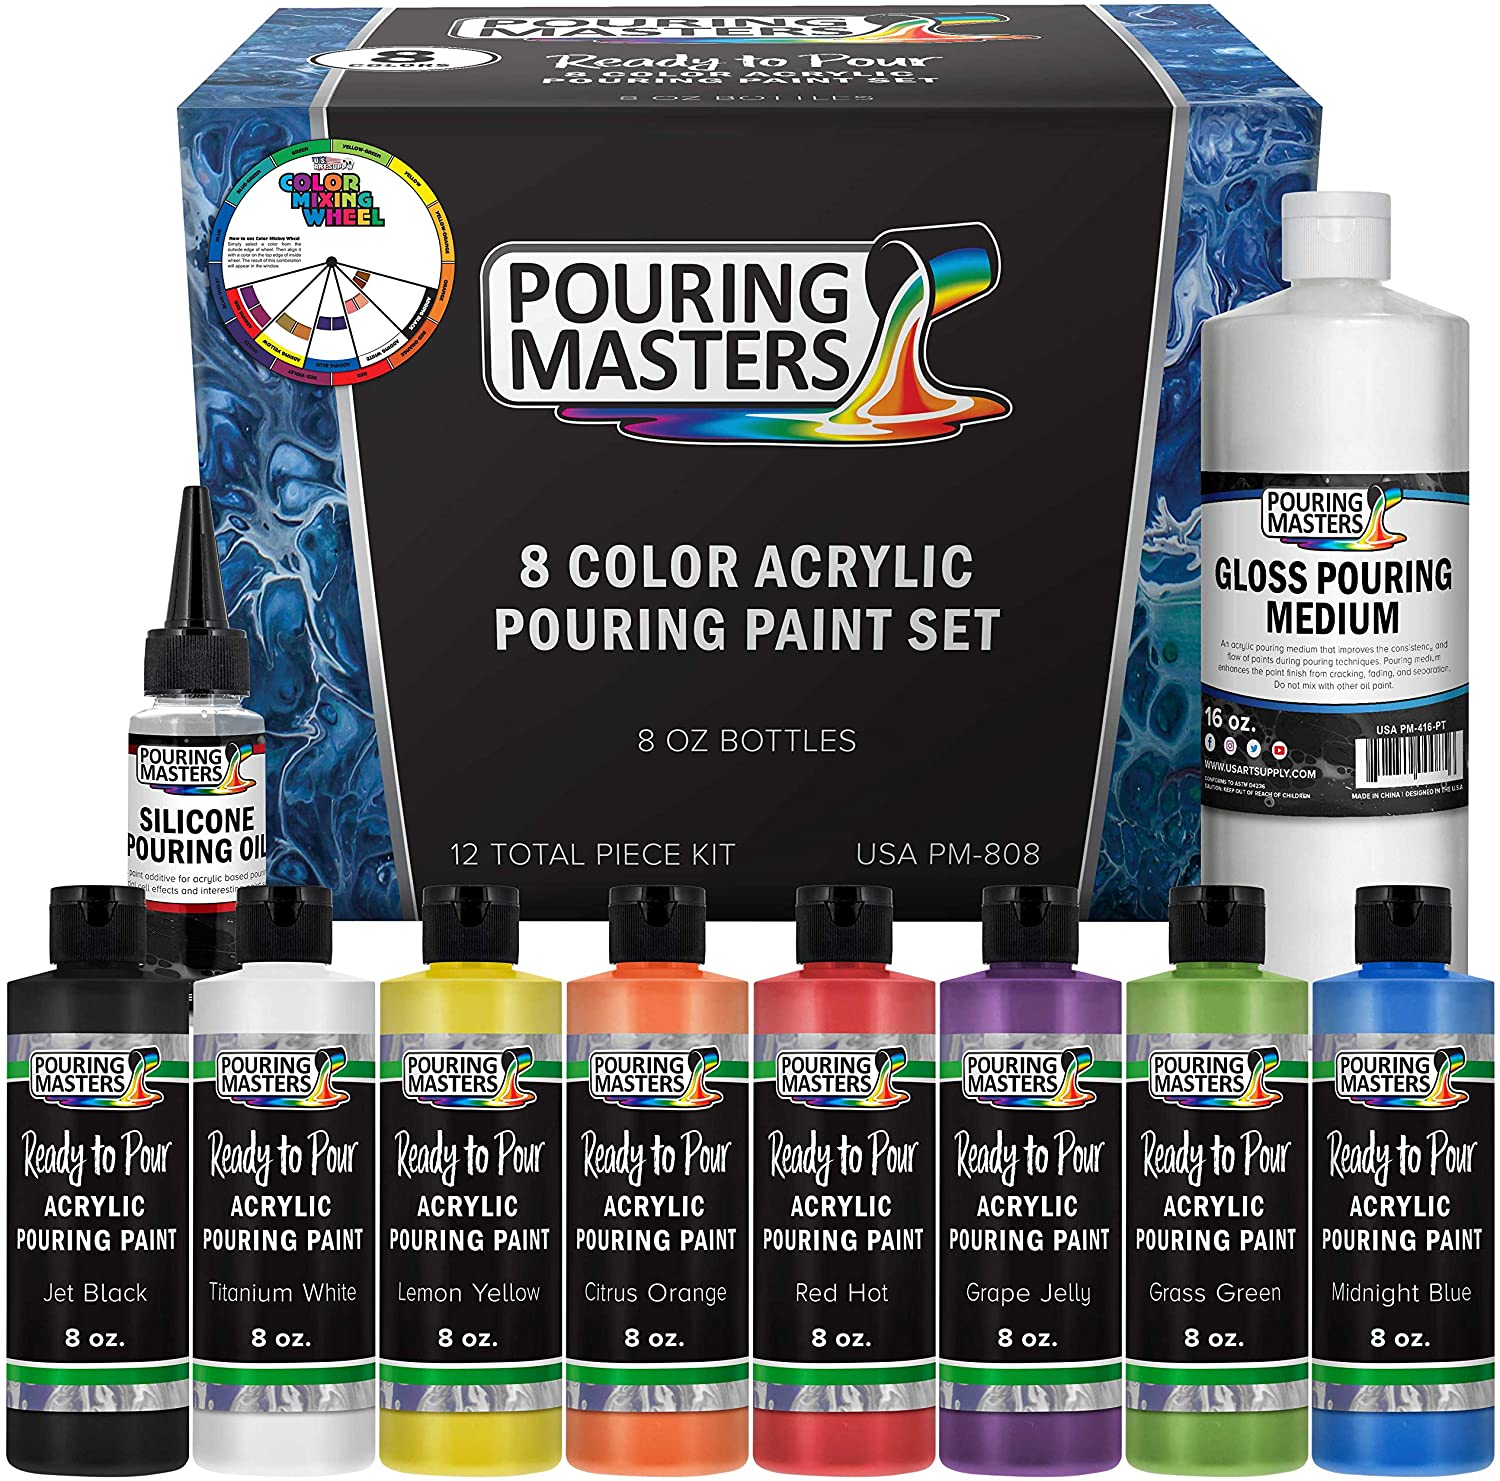 Amazon Com Pouring Masters 8 Color Ready To Pour Acrylic Pouring Paint Set Premium Pre Mixed High Flow 8 Ounce Bottles For Canvas Wood Paper Crafts Tile Rocks And More